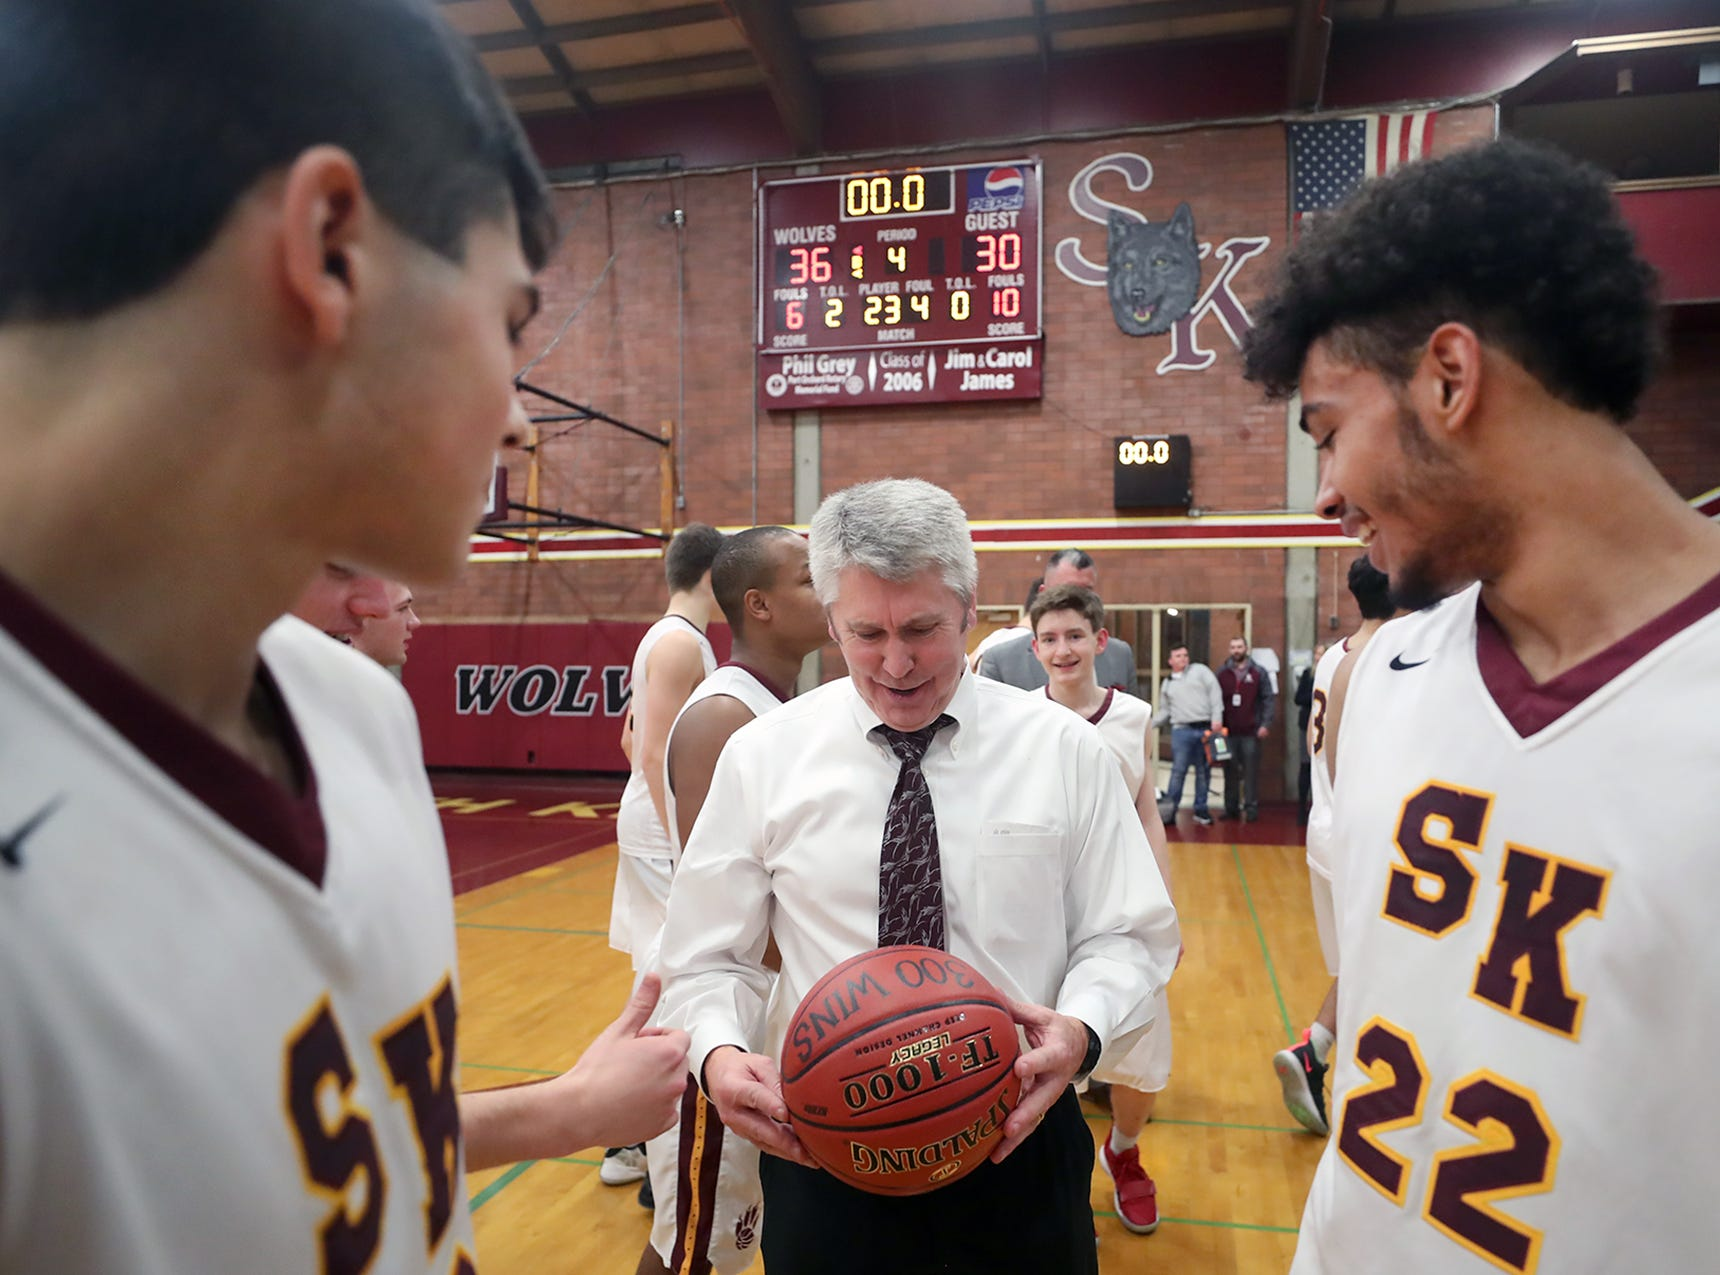 South Kitsap High School varsity head basketball coach John Callaghan won his 300th game against Bellarmine at South Kitsap on Thursday, January 17, 2019. An emotional Callaghan was given a  ball with his 300th victory on it.